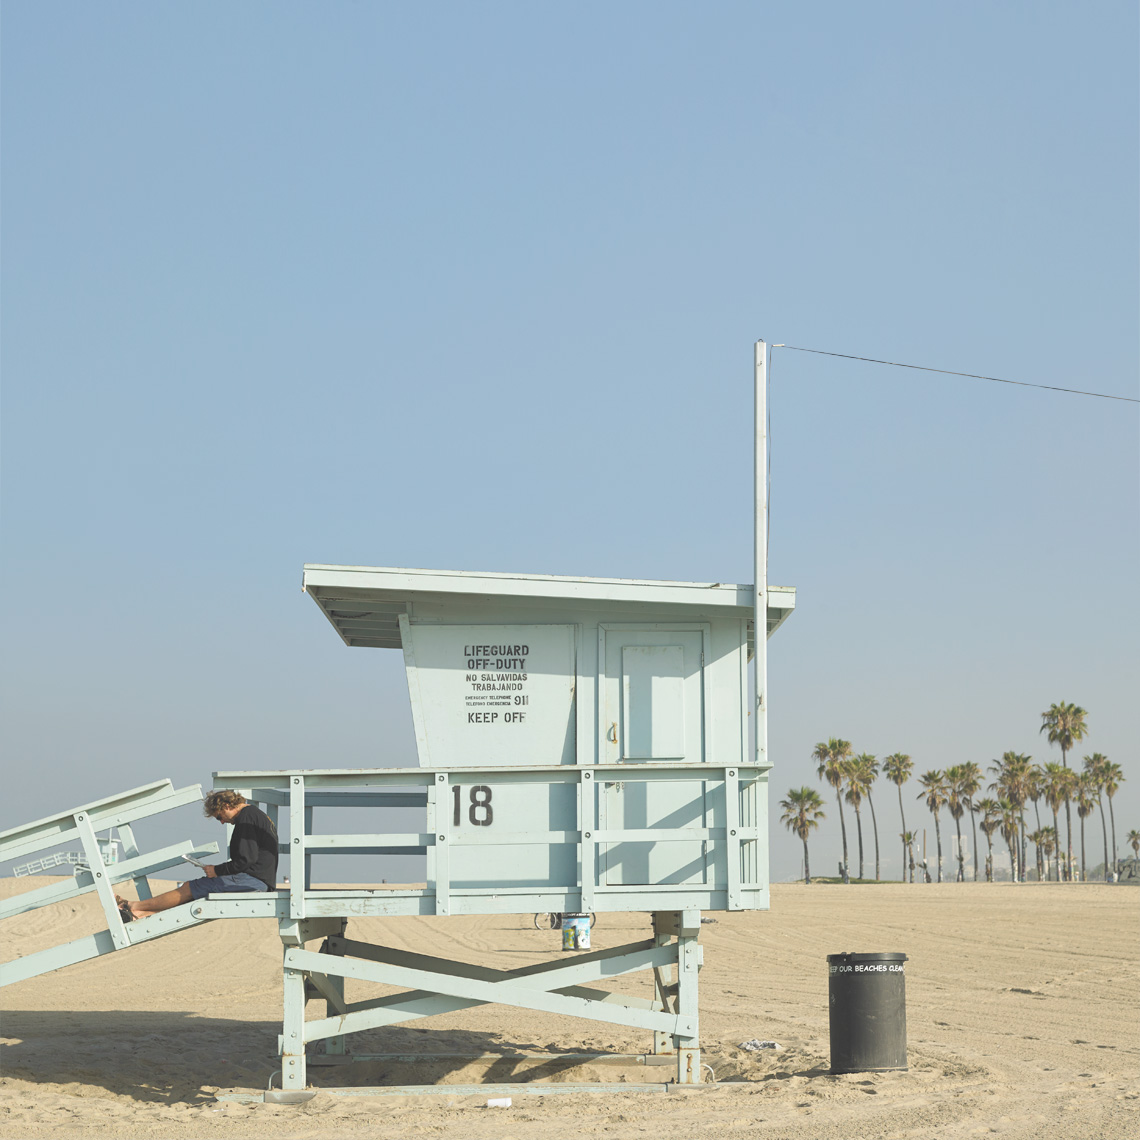 Santa Monica beach lifeguard tower empty beach locations Lindsay Siu Photographer Commercial Editorial Advertising Fine Art photograpy